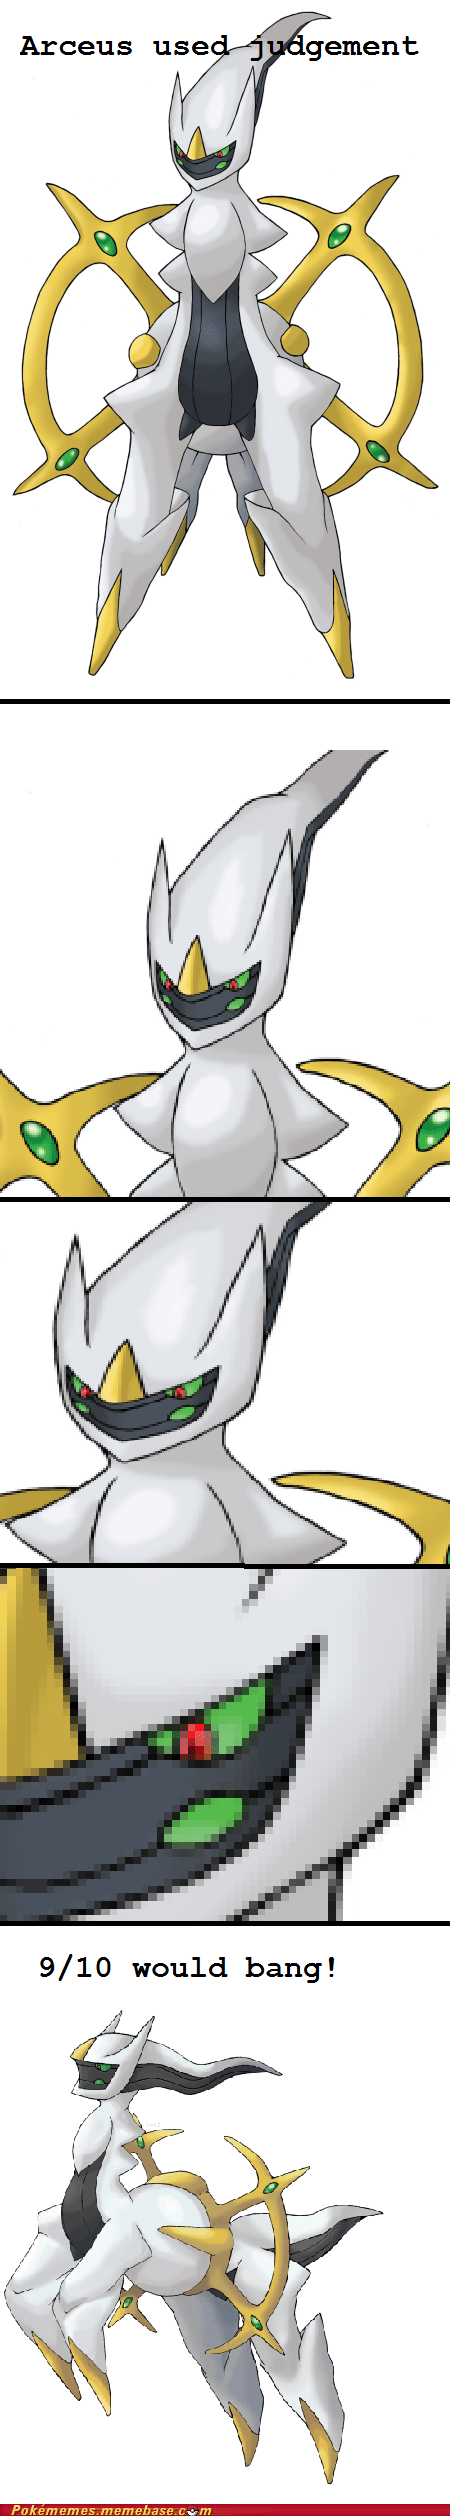 arceus,judgment,meme,Memes,would bang